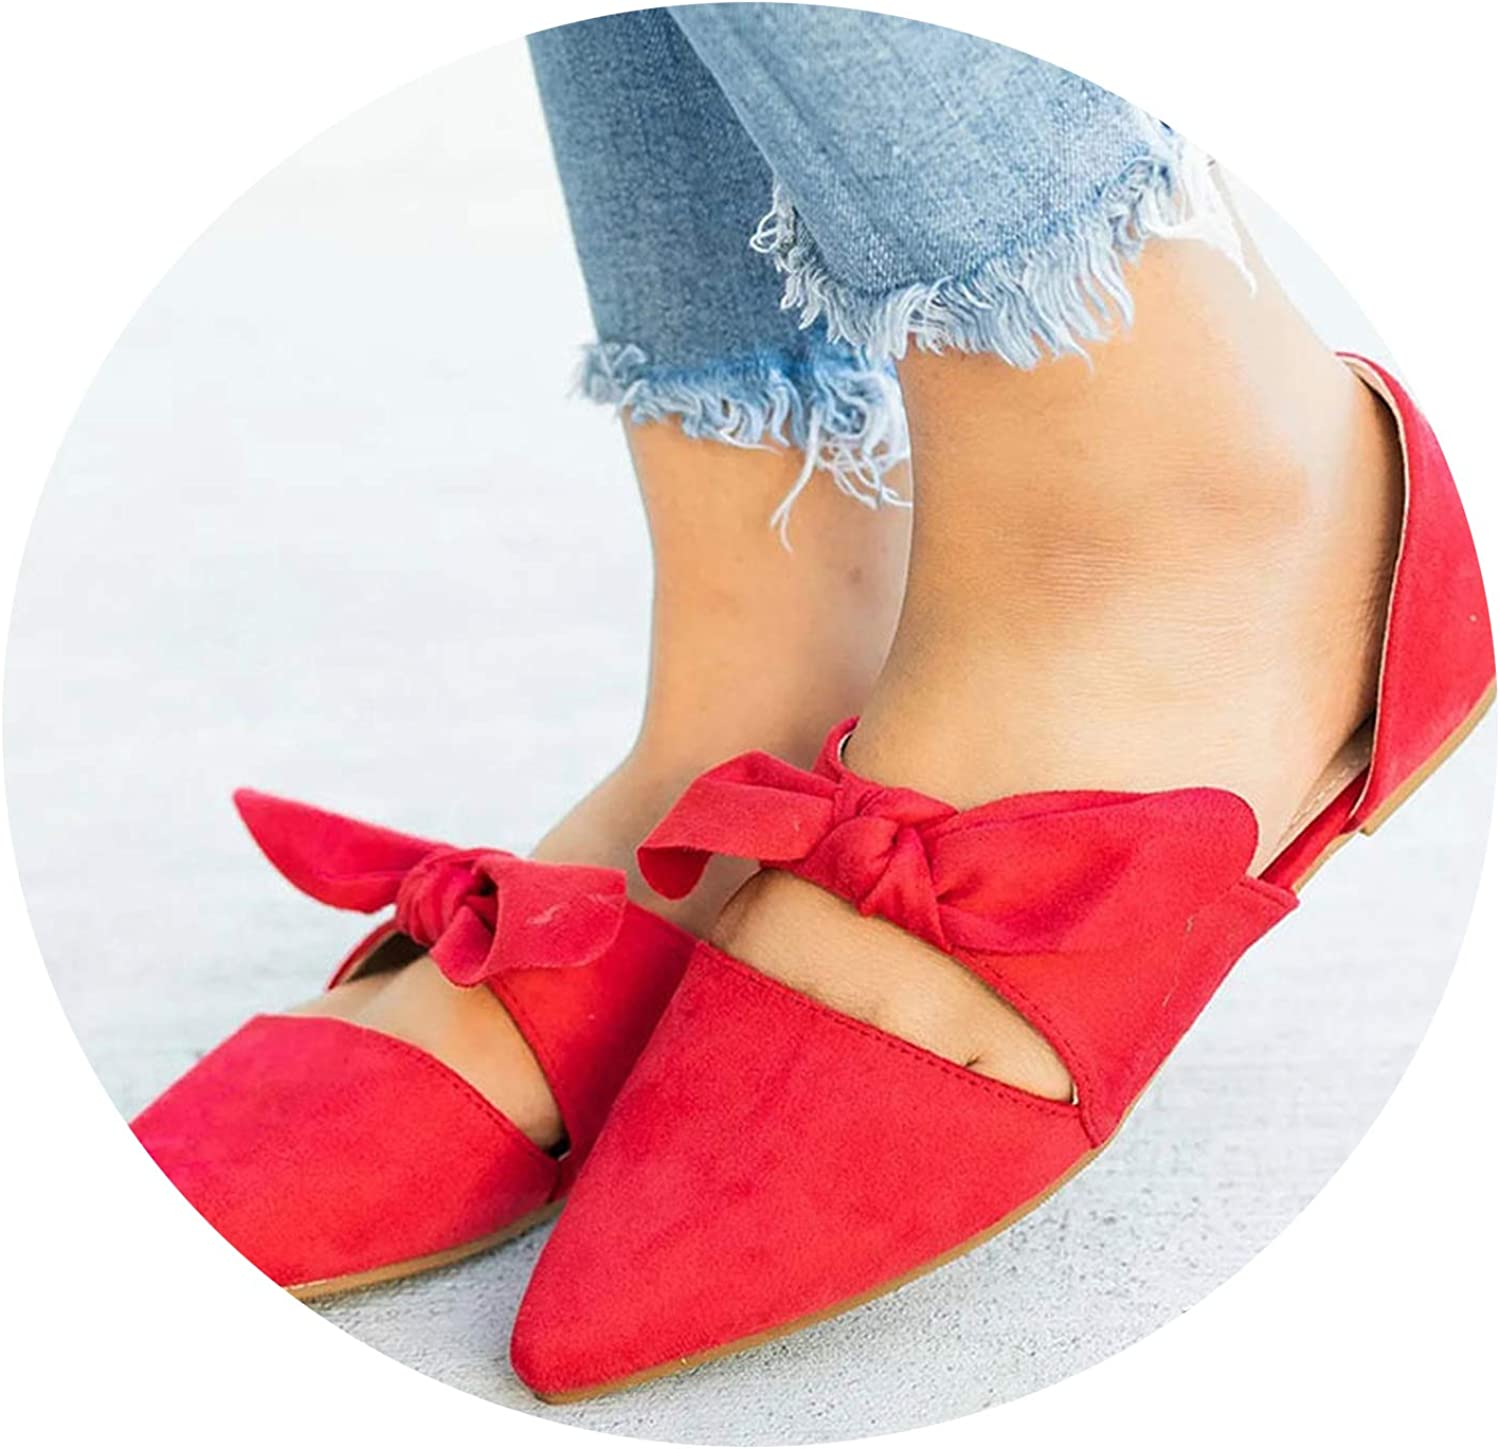 Women's Sandals Flat Summer Fashion Wedge shoes's Buckle Casual,Red,10